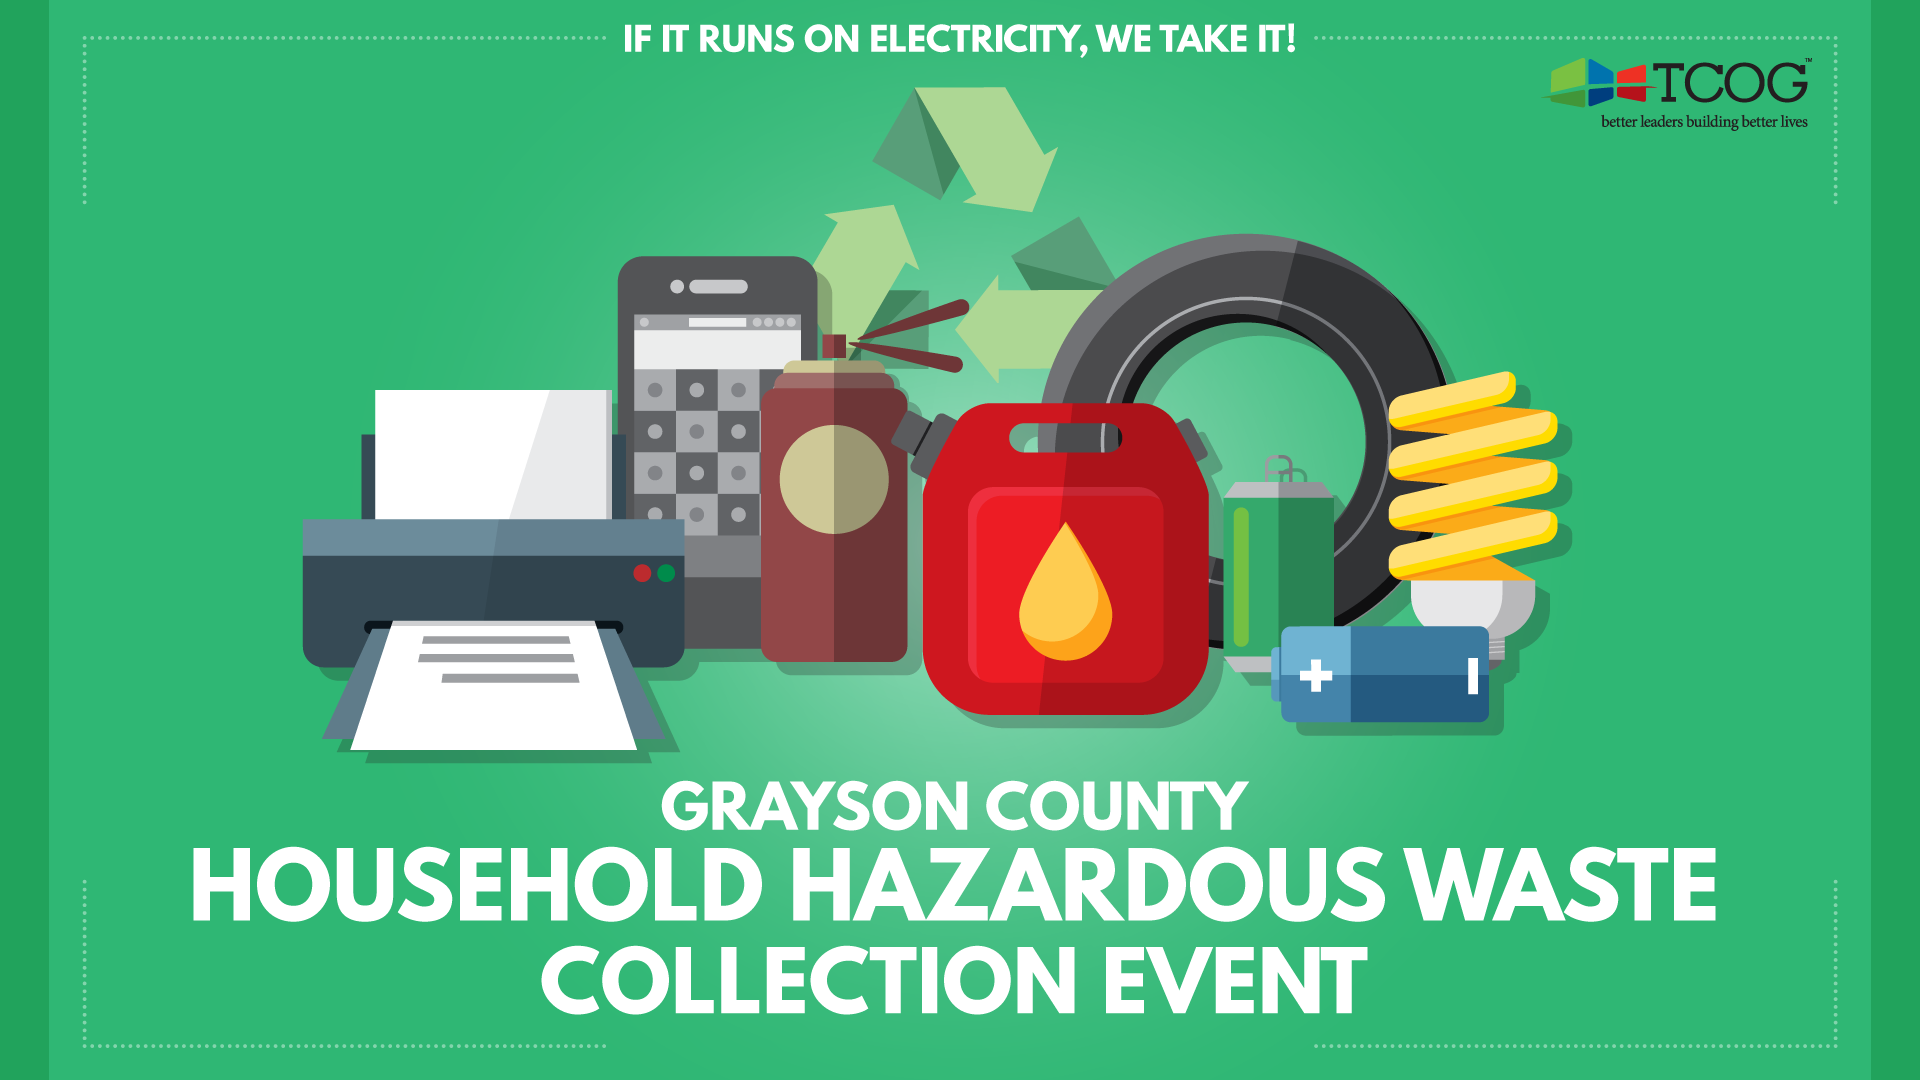 Grayson County Household Hazardous Waste Collection Event